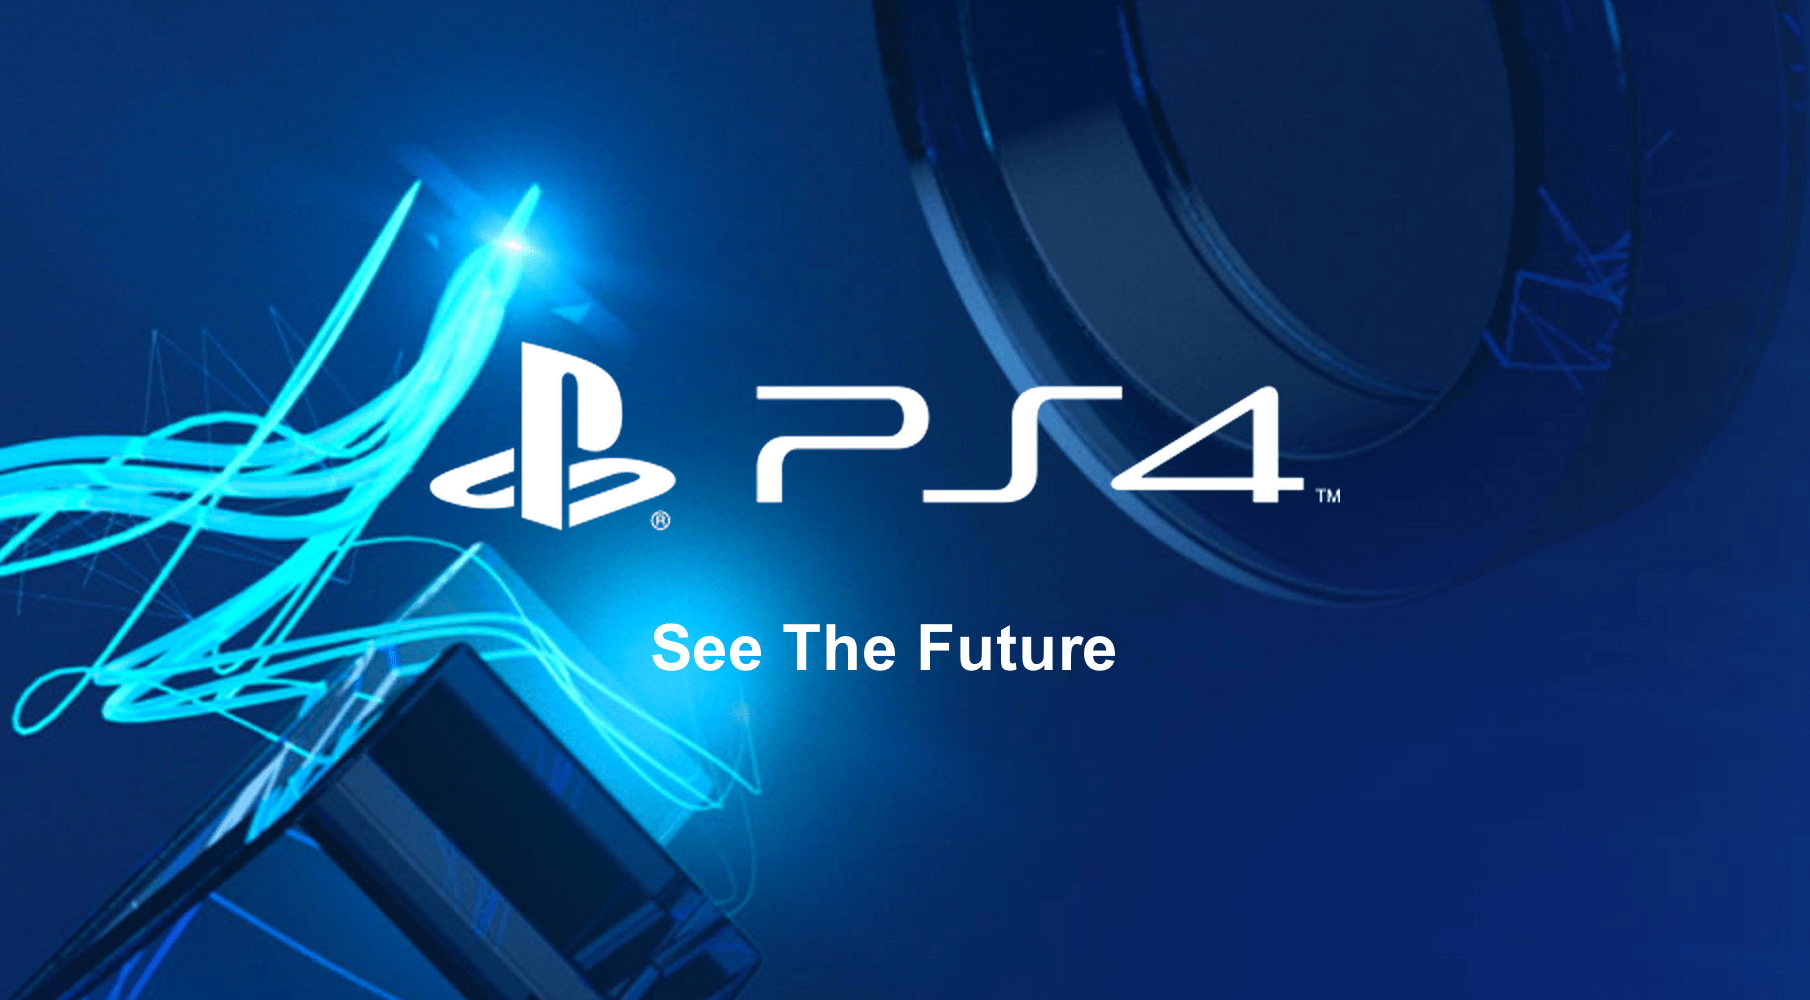 Photo of E3 2014 Announcement Check-Up: Sony